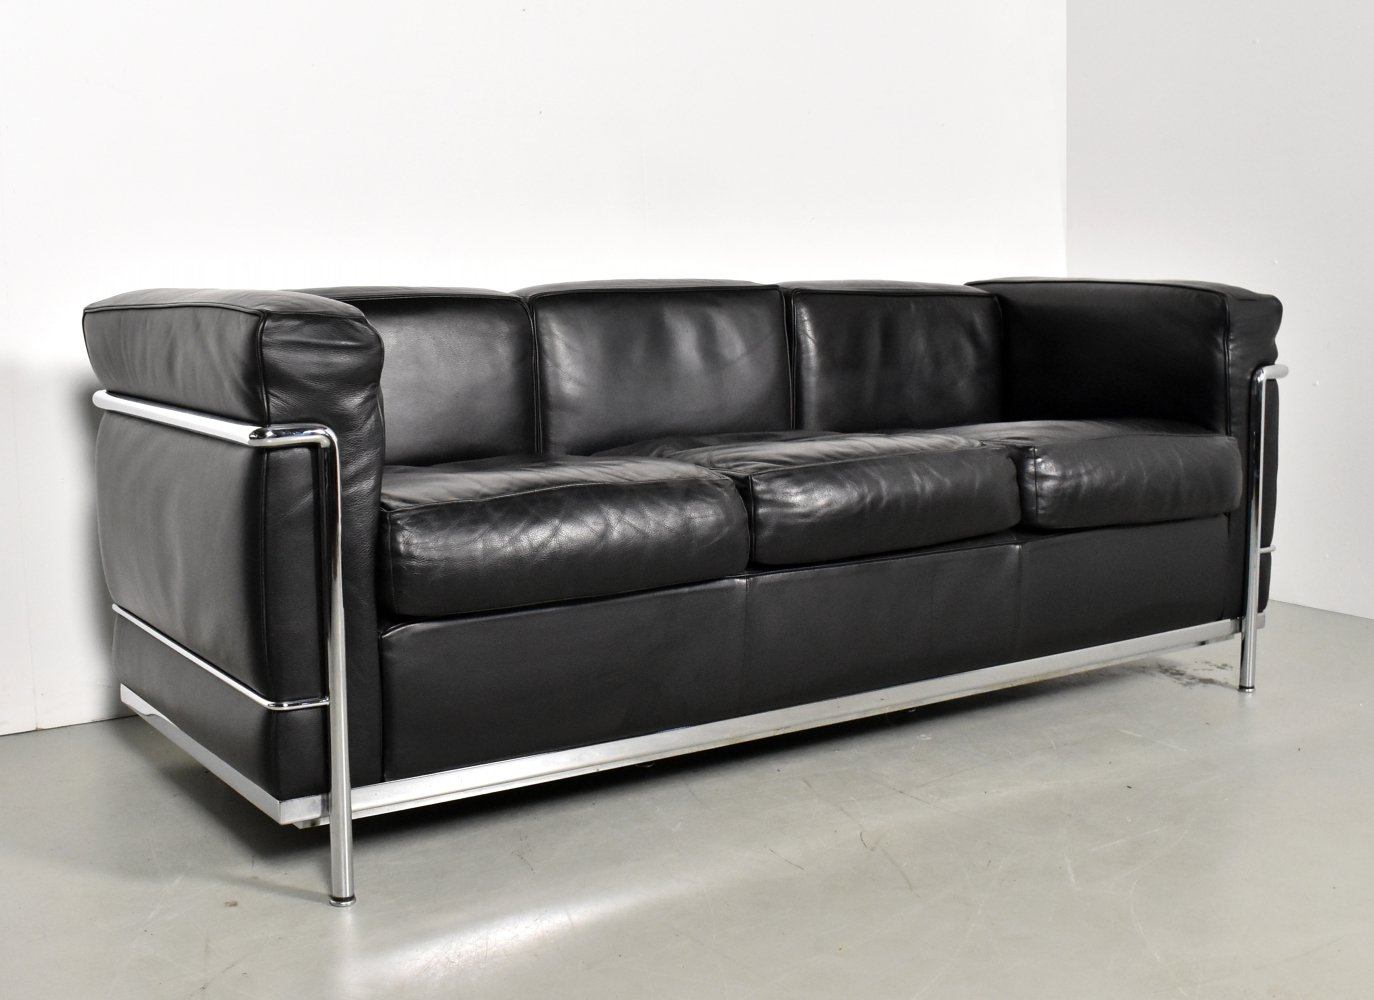 LC2 3-seater sofa by Le Corbusier & Charlotte Perriand for Cassina, 1990s